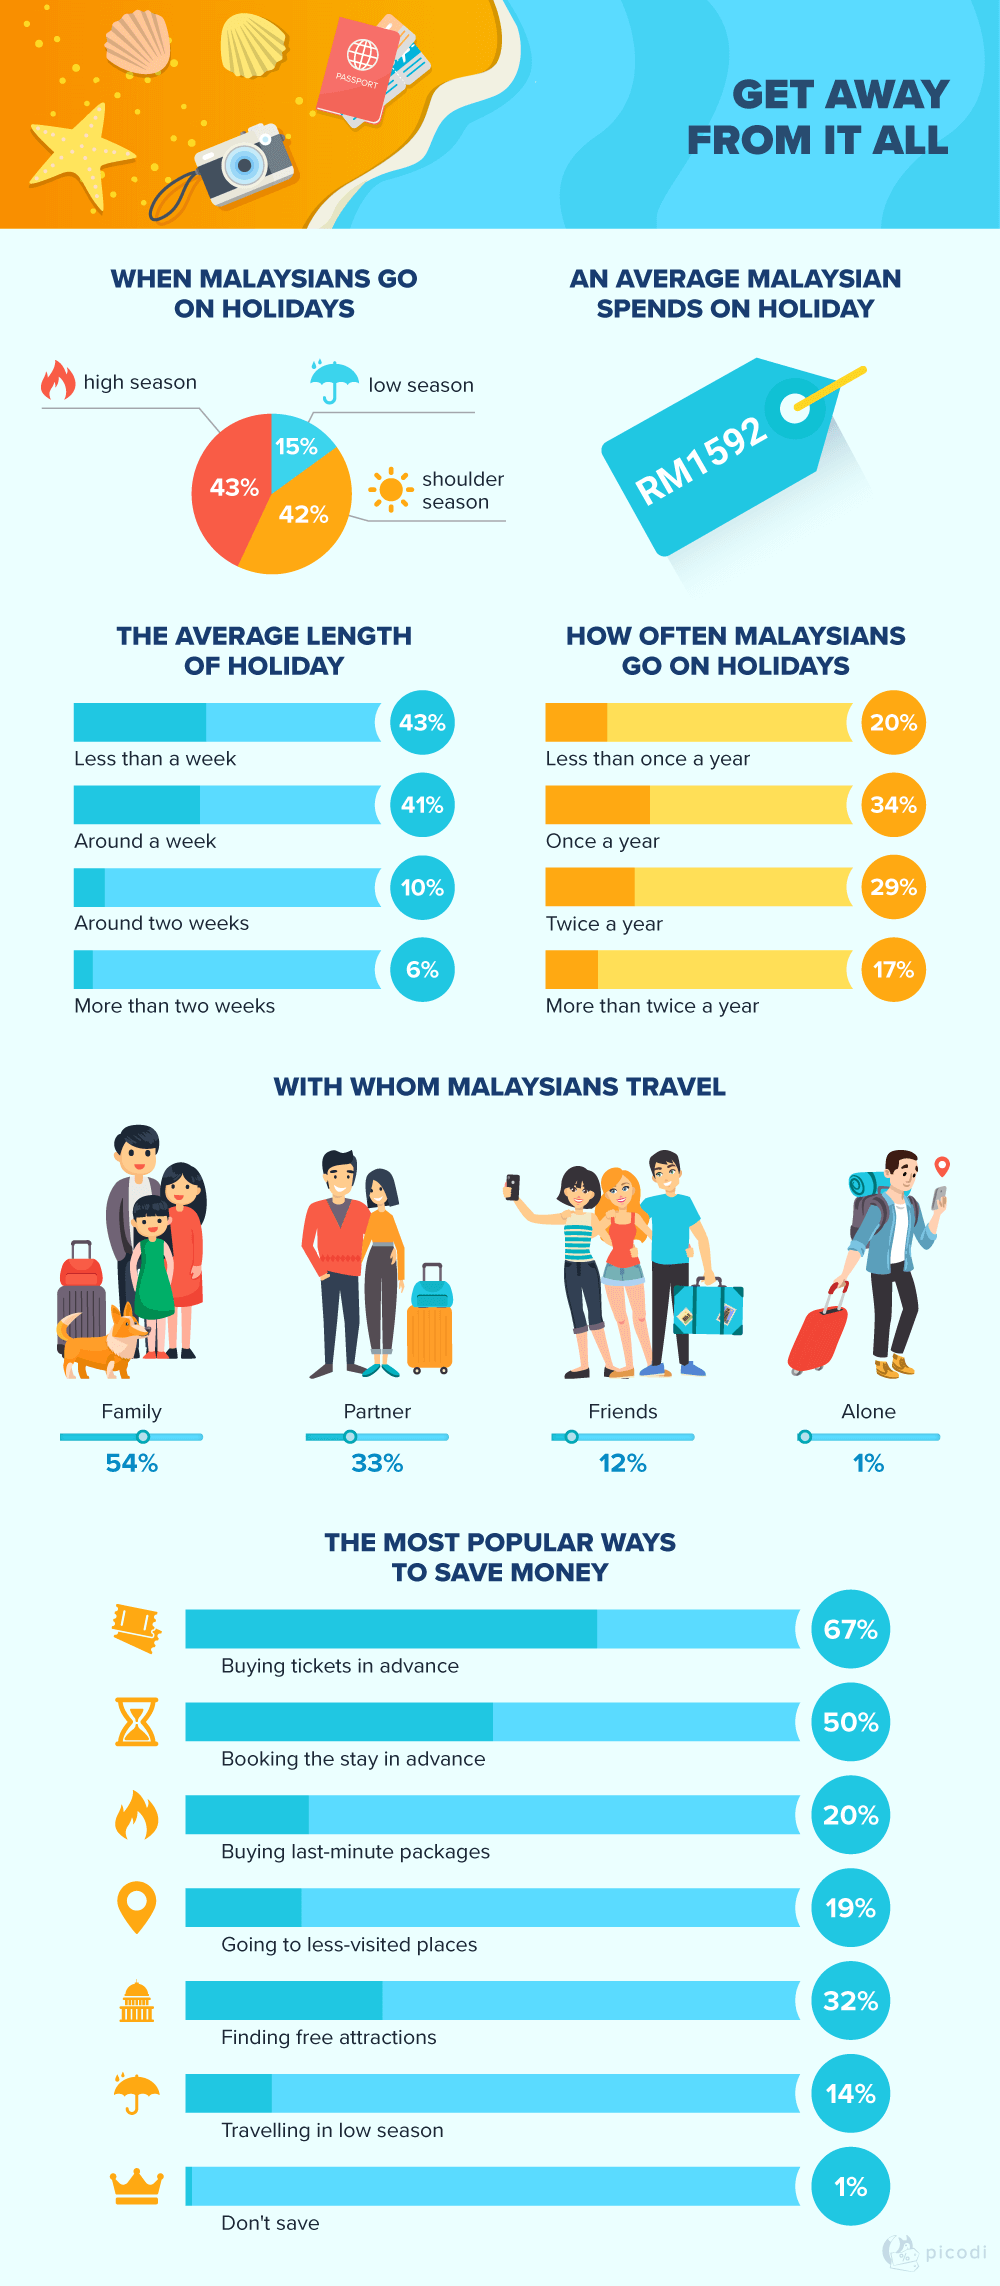 Holiday preferences of Malaysians